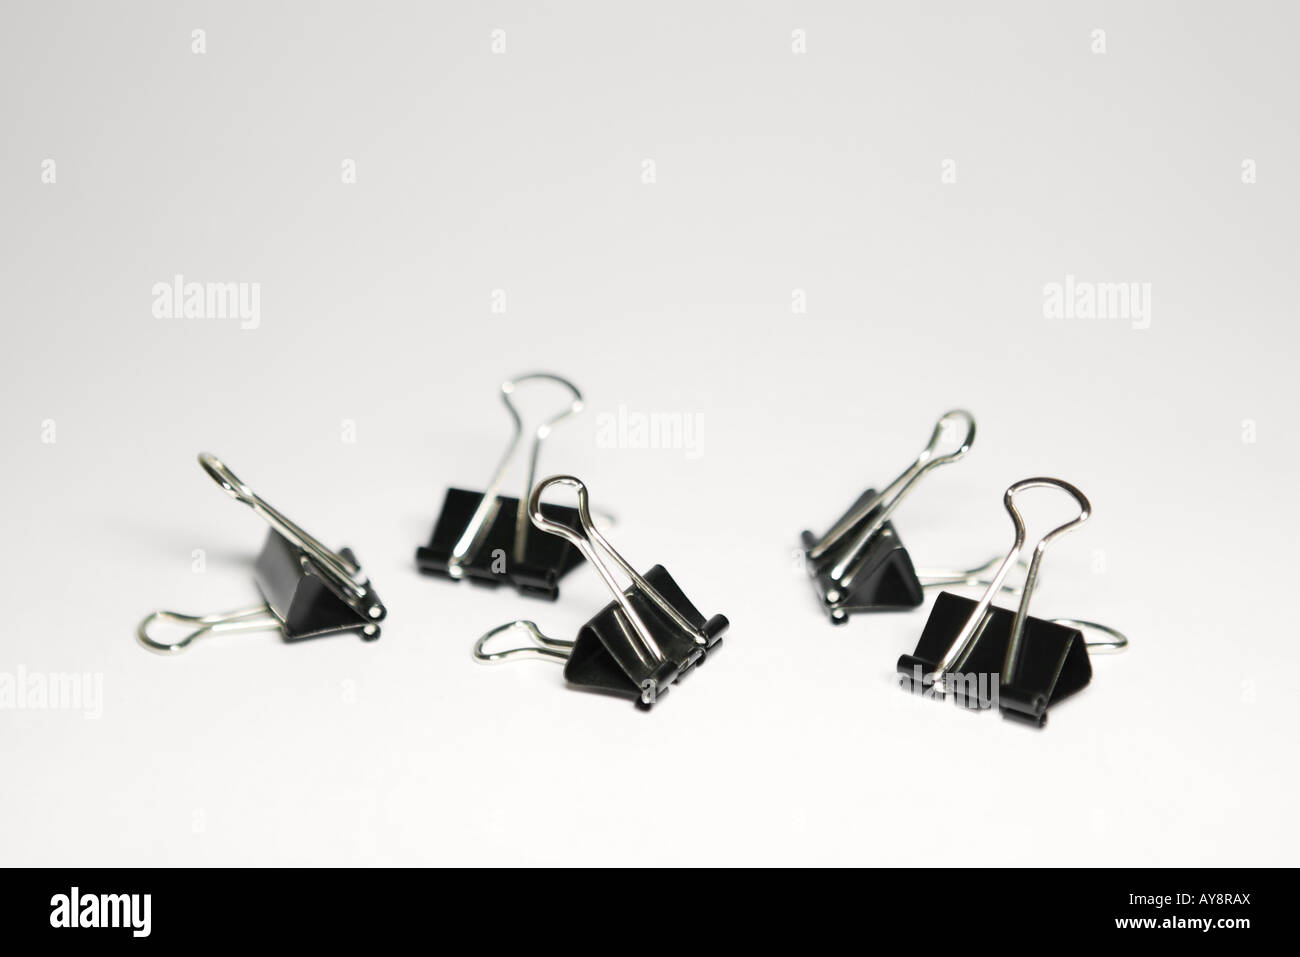 Binder clips, close-up - Stock Image